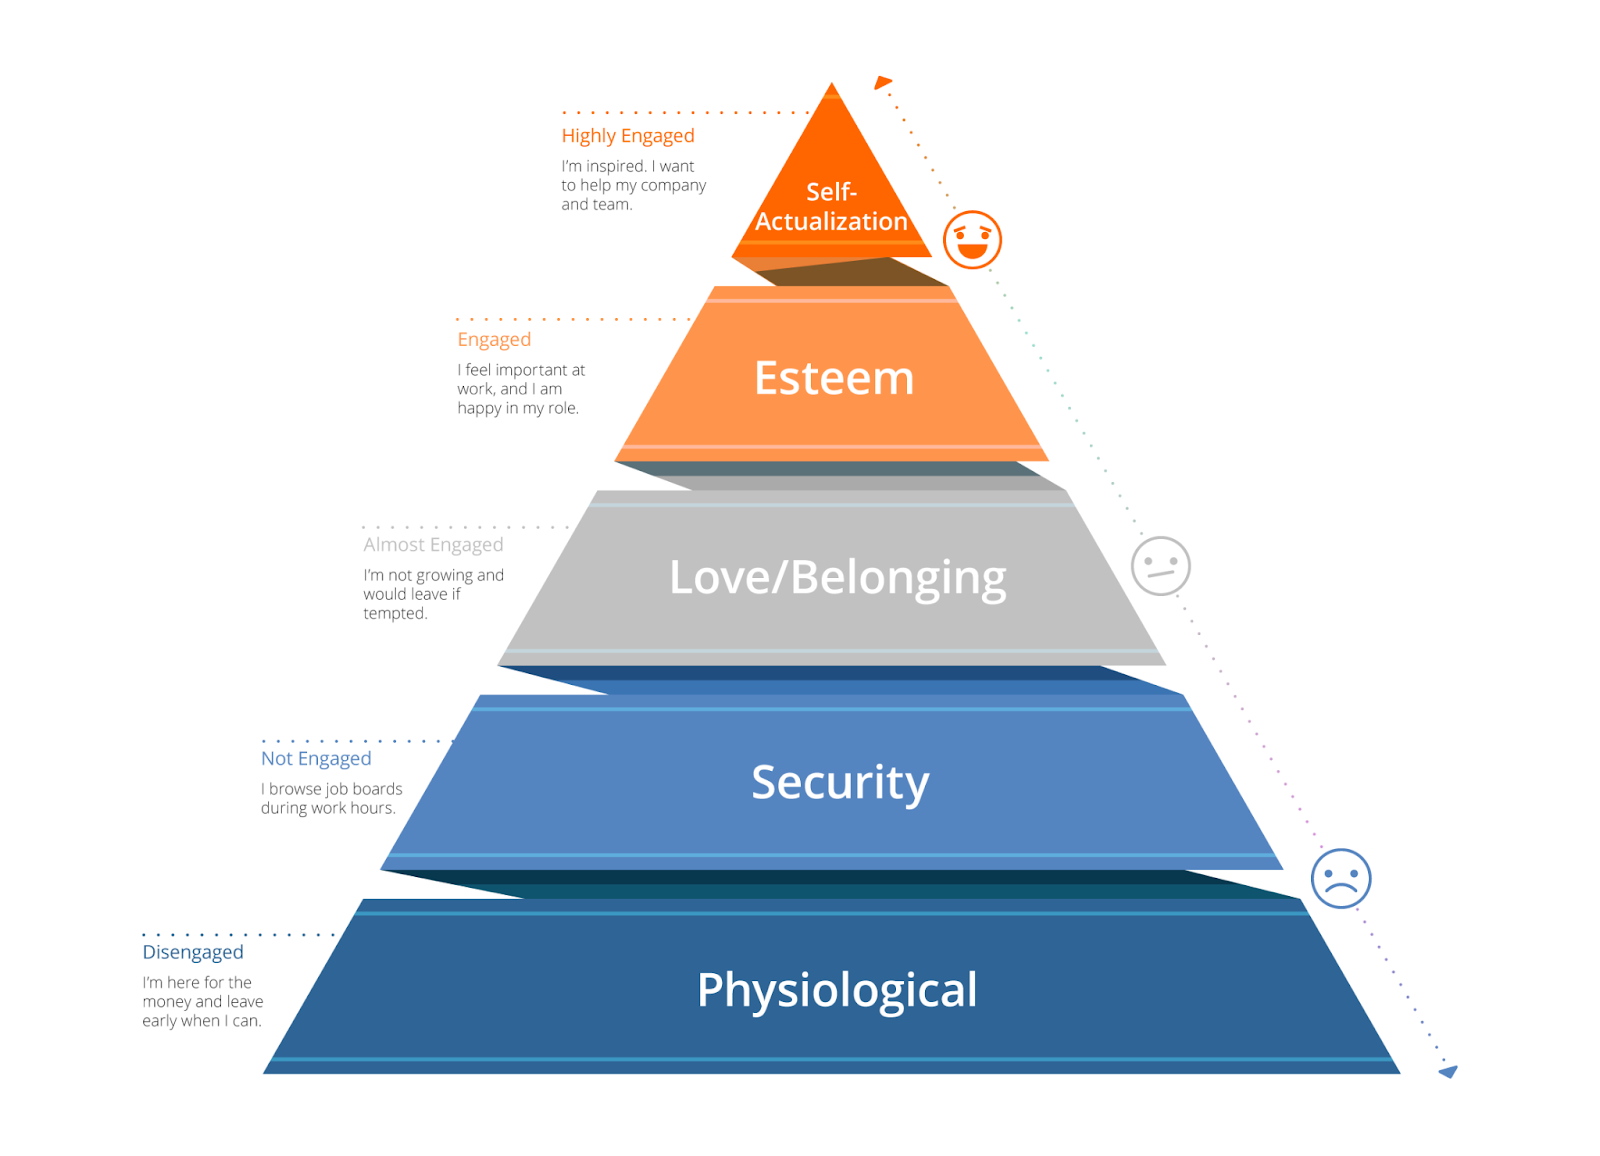 Maslow's hierarchy of human needs triangle